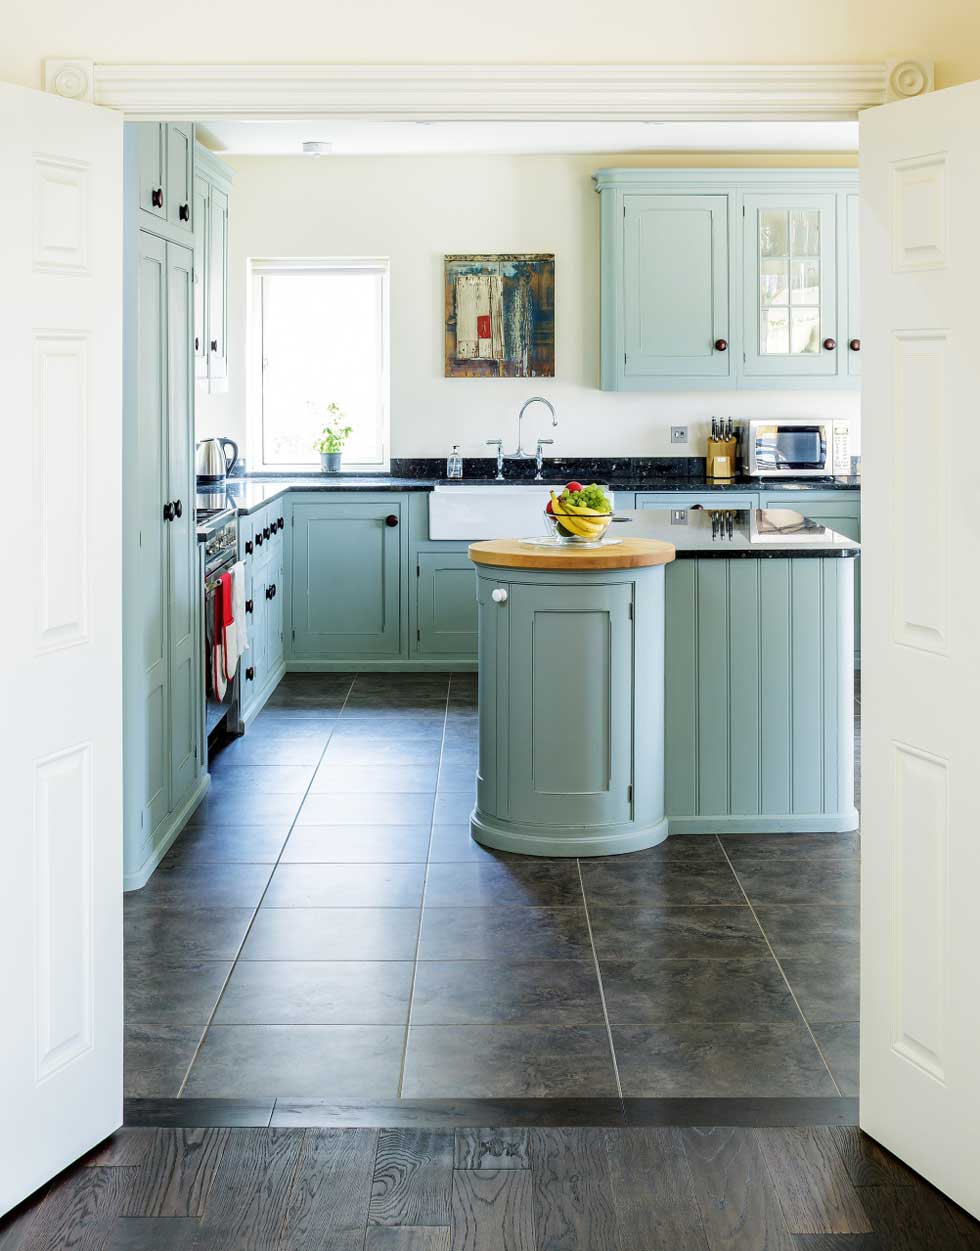 The bespoke shaker-style kitchen includes a centre island